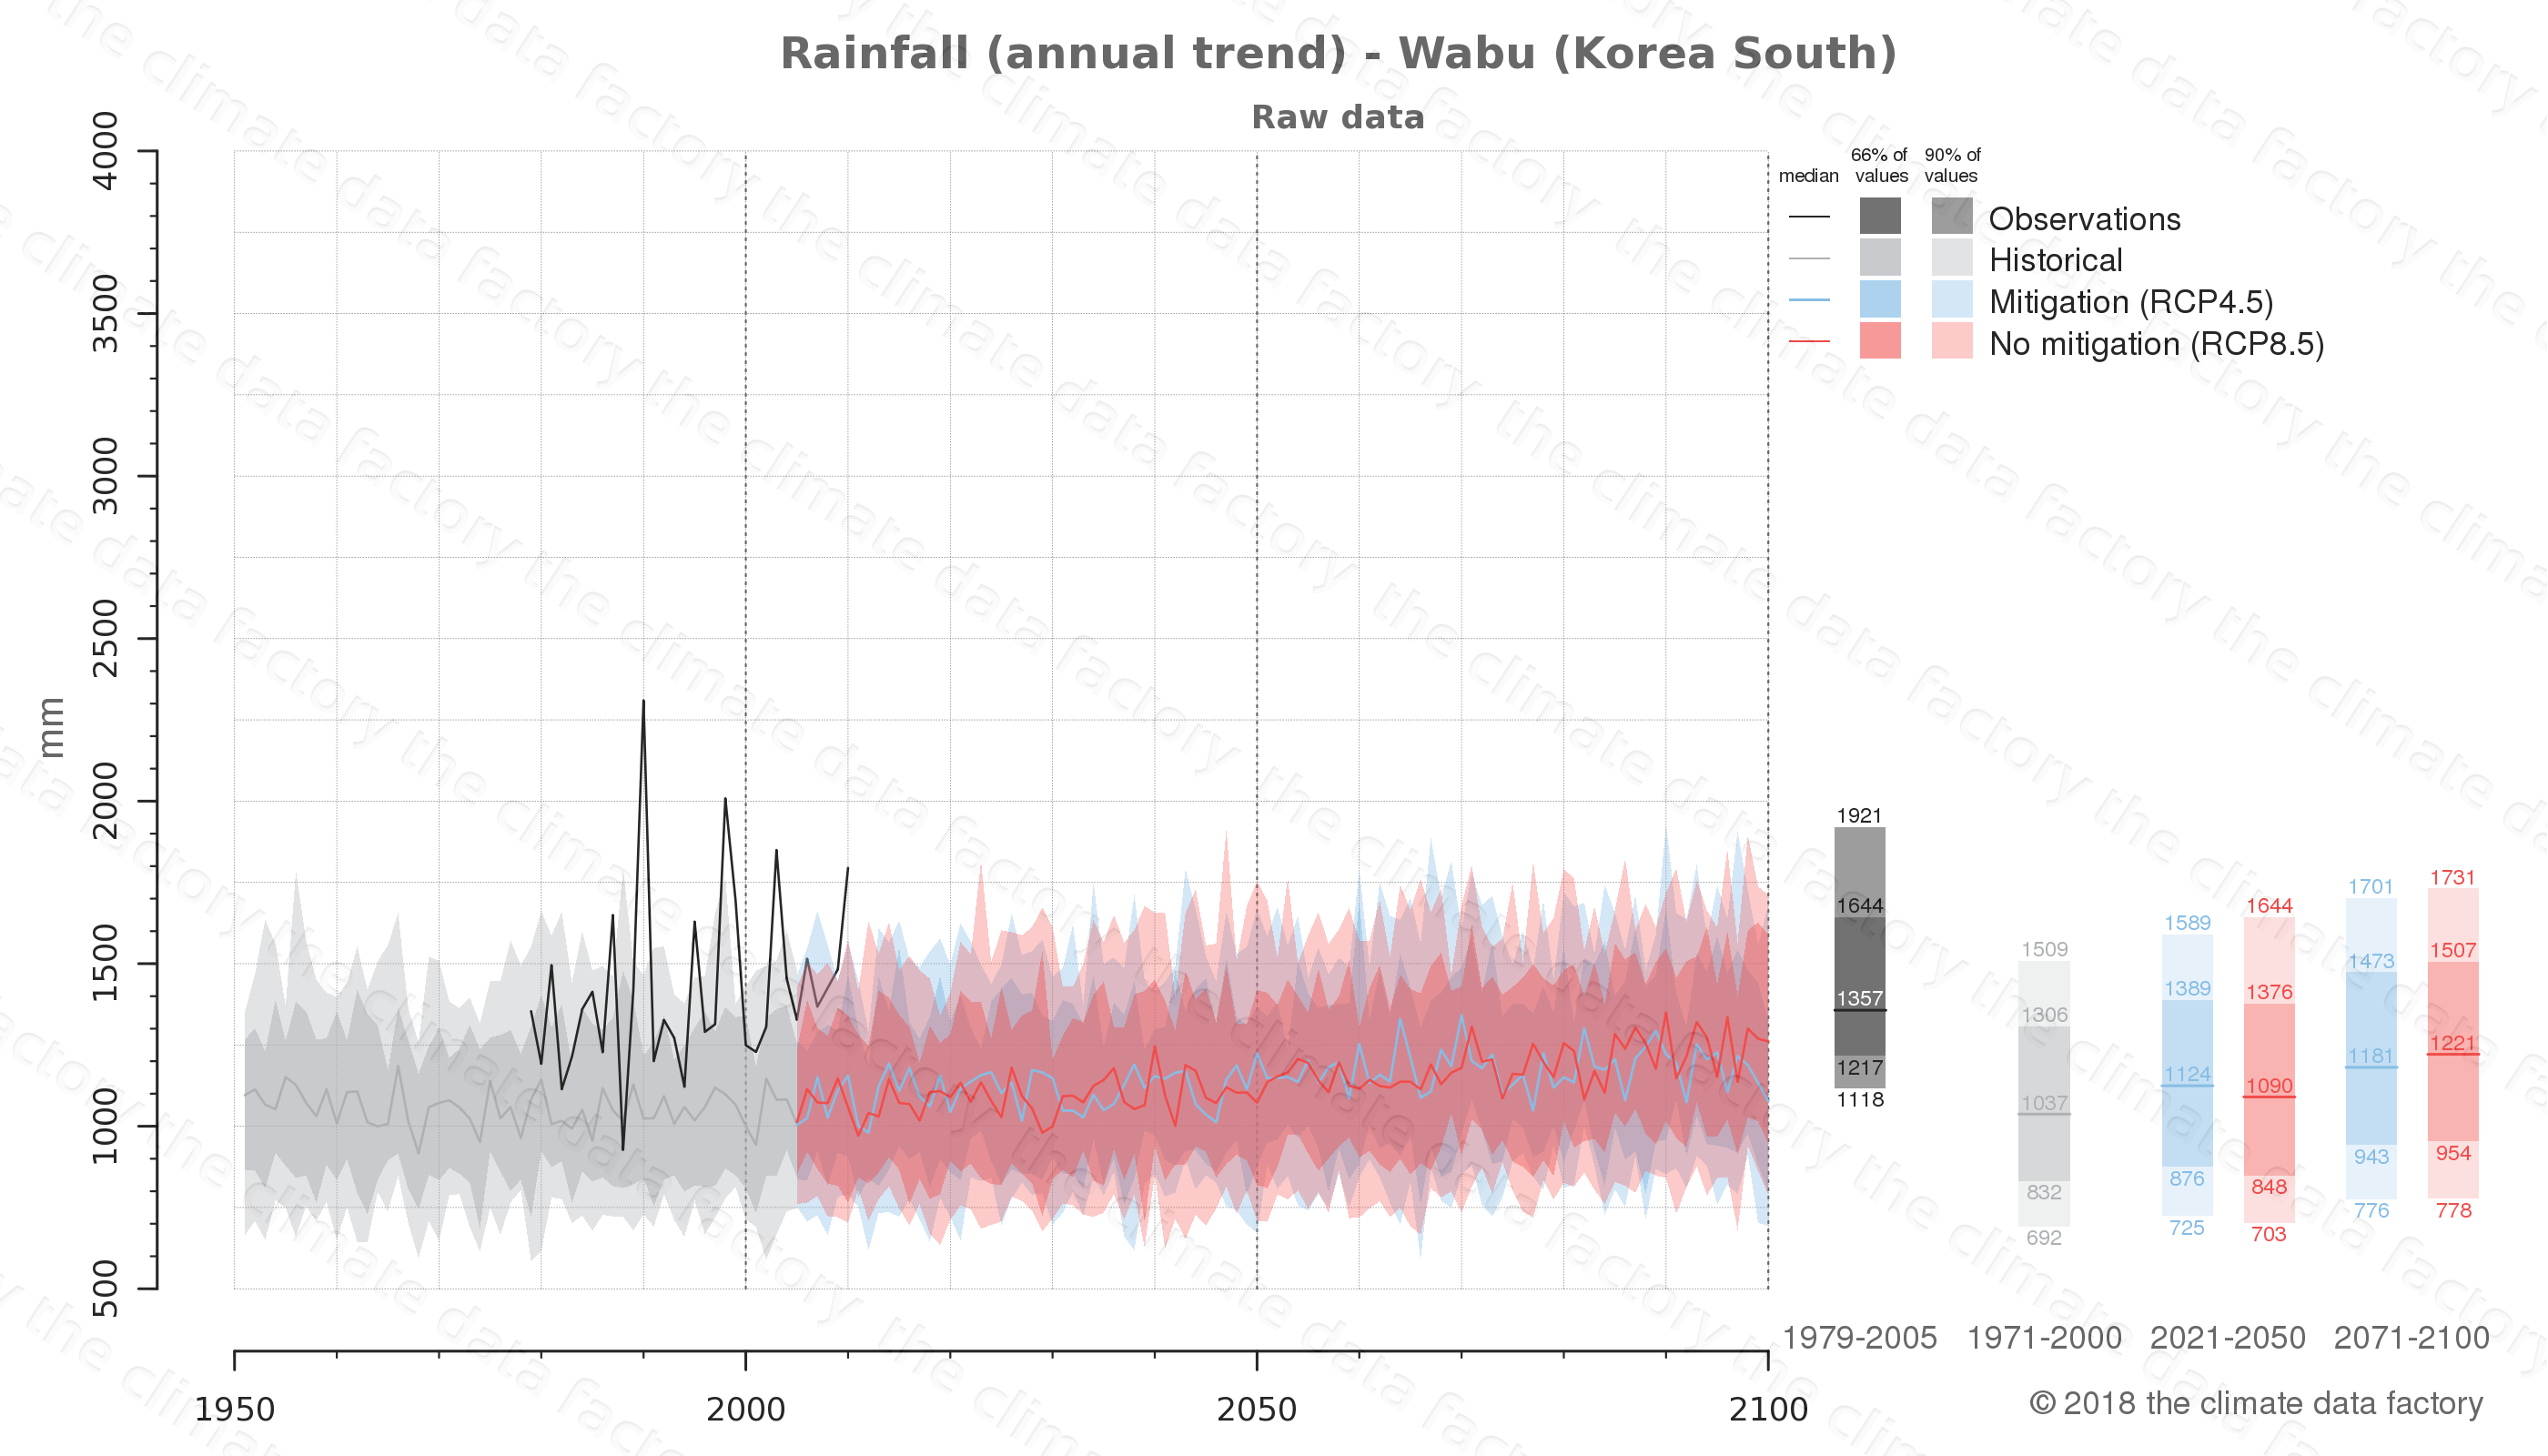 climate change data policy adaptation climate graph city data rainfall wabu south korea